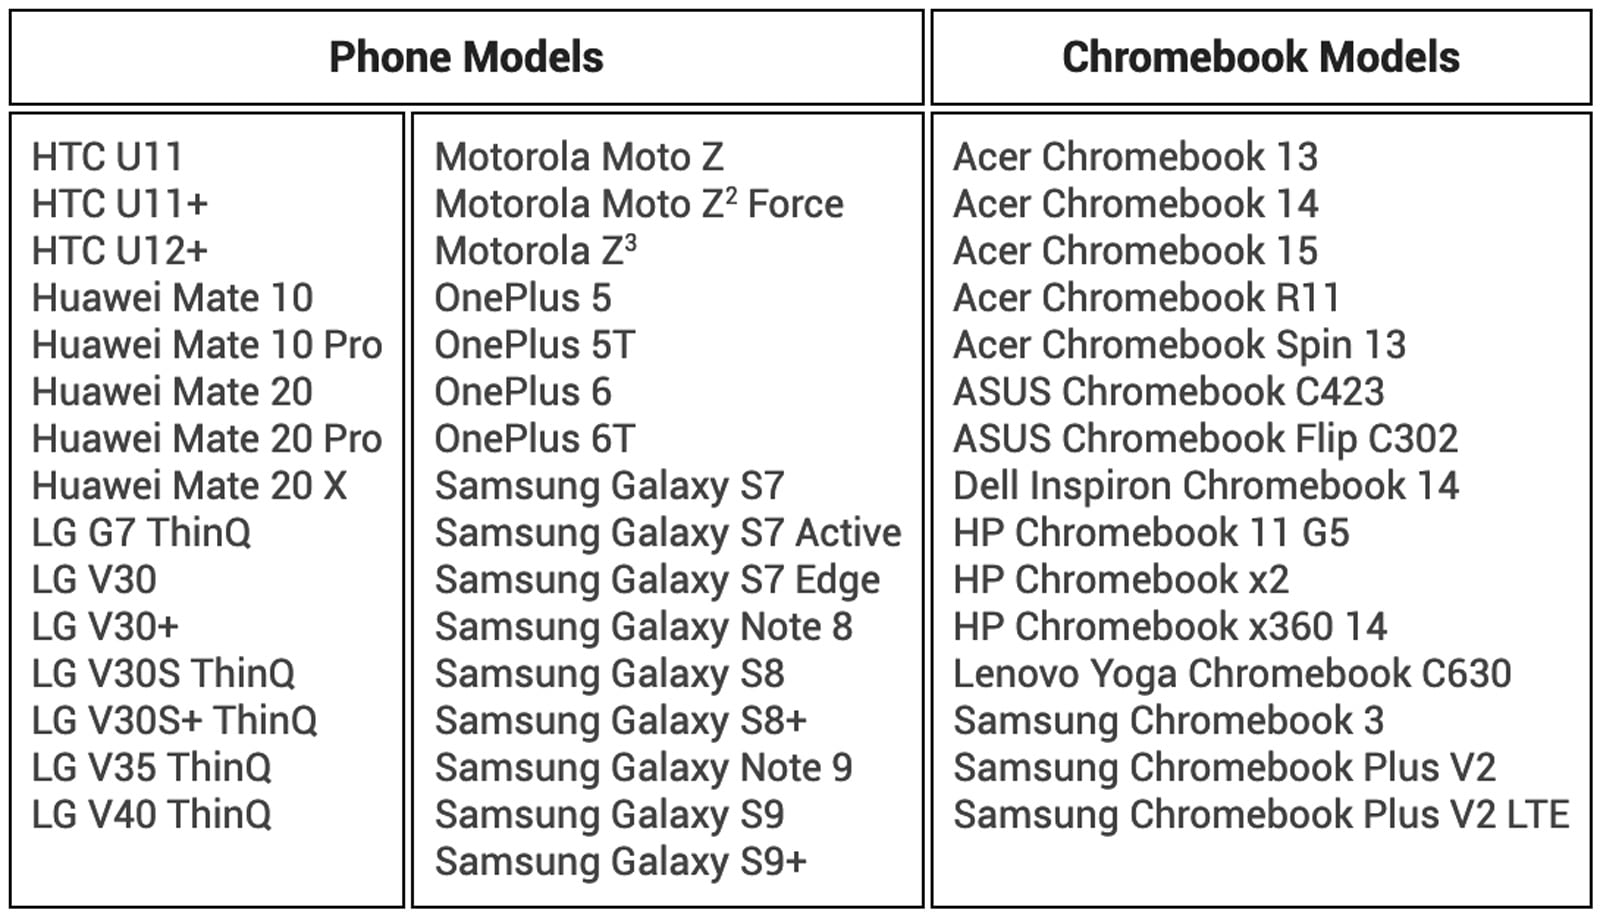 Chromebook Instant Tethering third-party device list